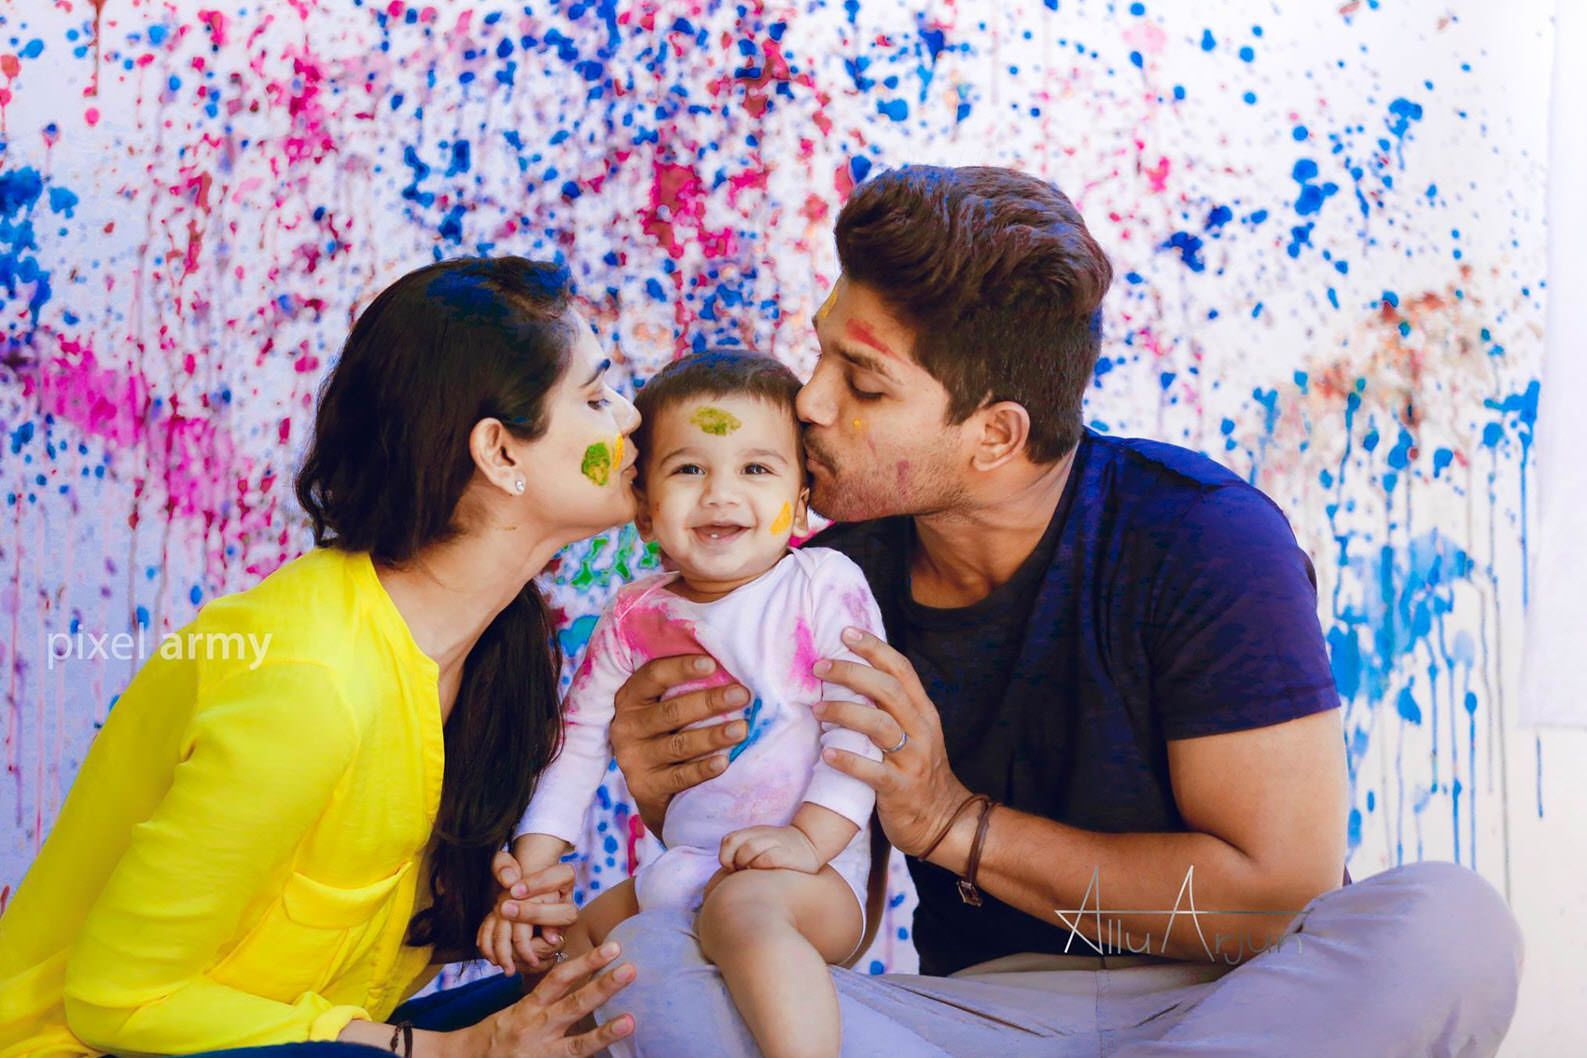 Allu arjun and sneha reddys son allu ayaan hd images movienewz in